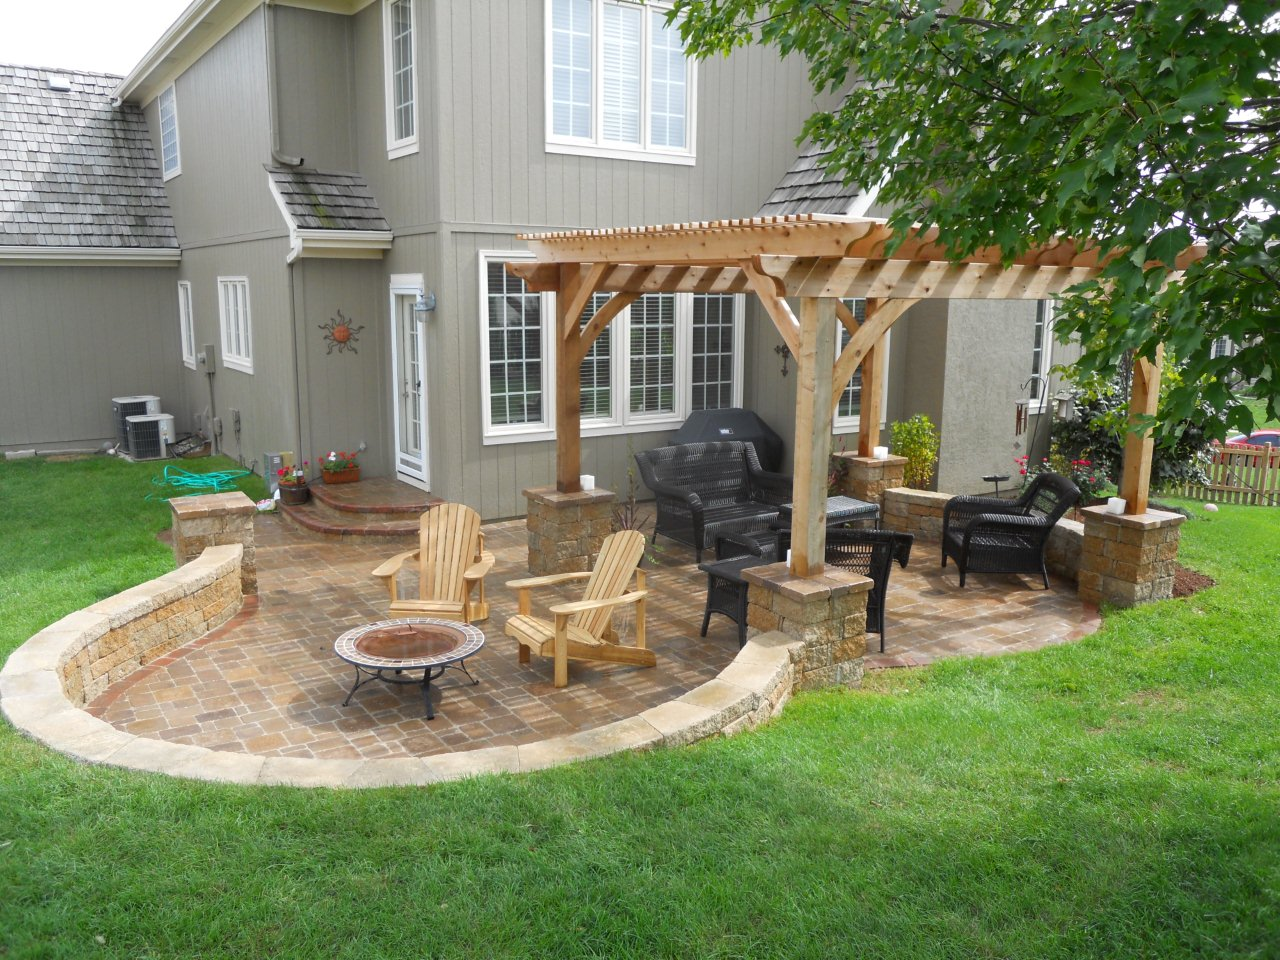 Flagstone Patio Pavers Design Ideas For Backyard Patio ... on Small Backyard Brick Patio Ideas  id=51601